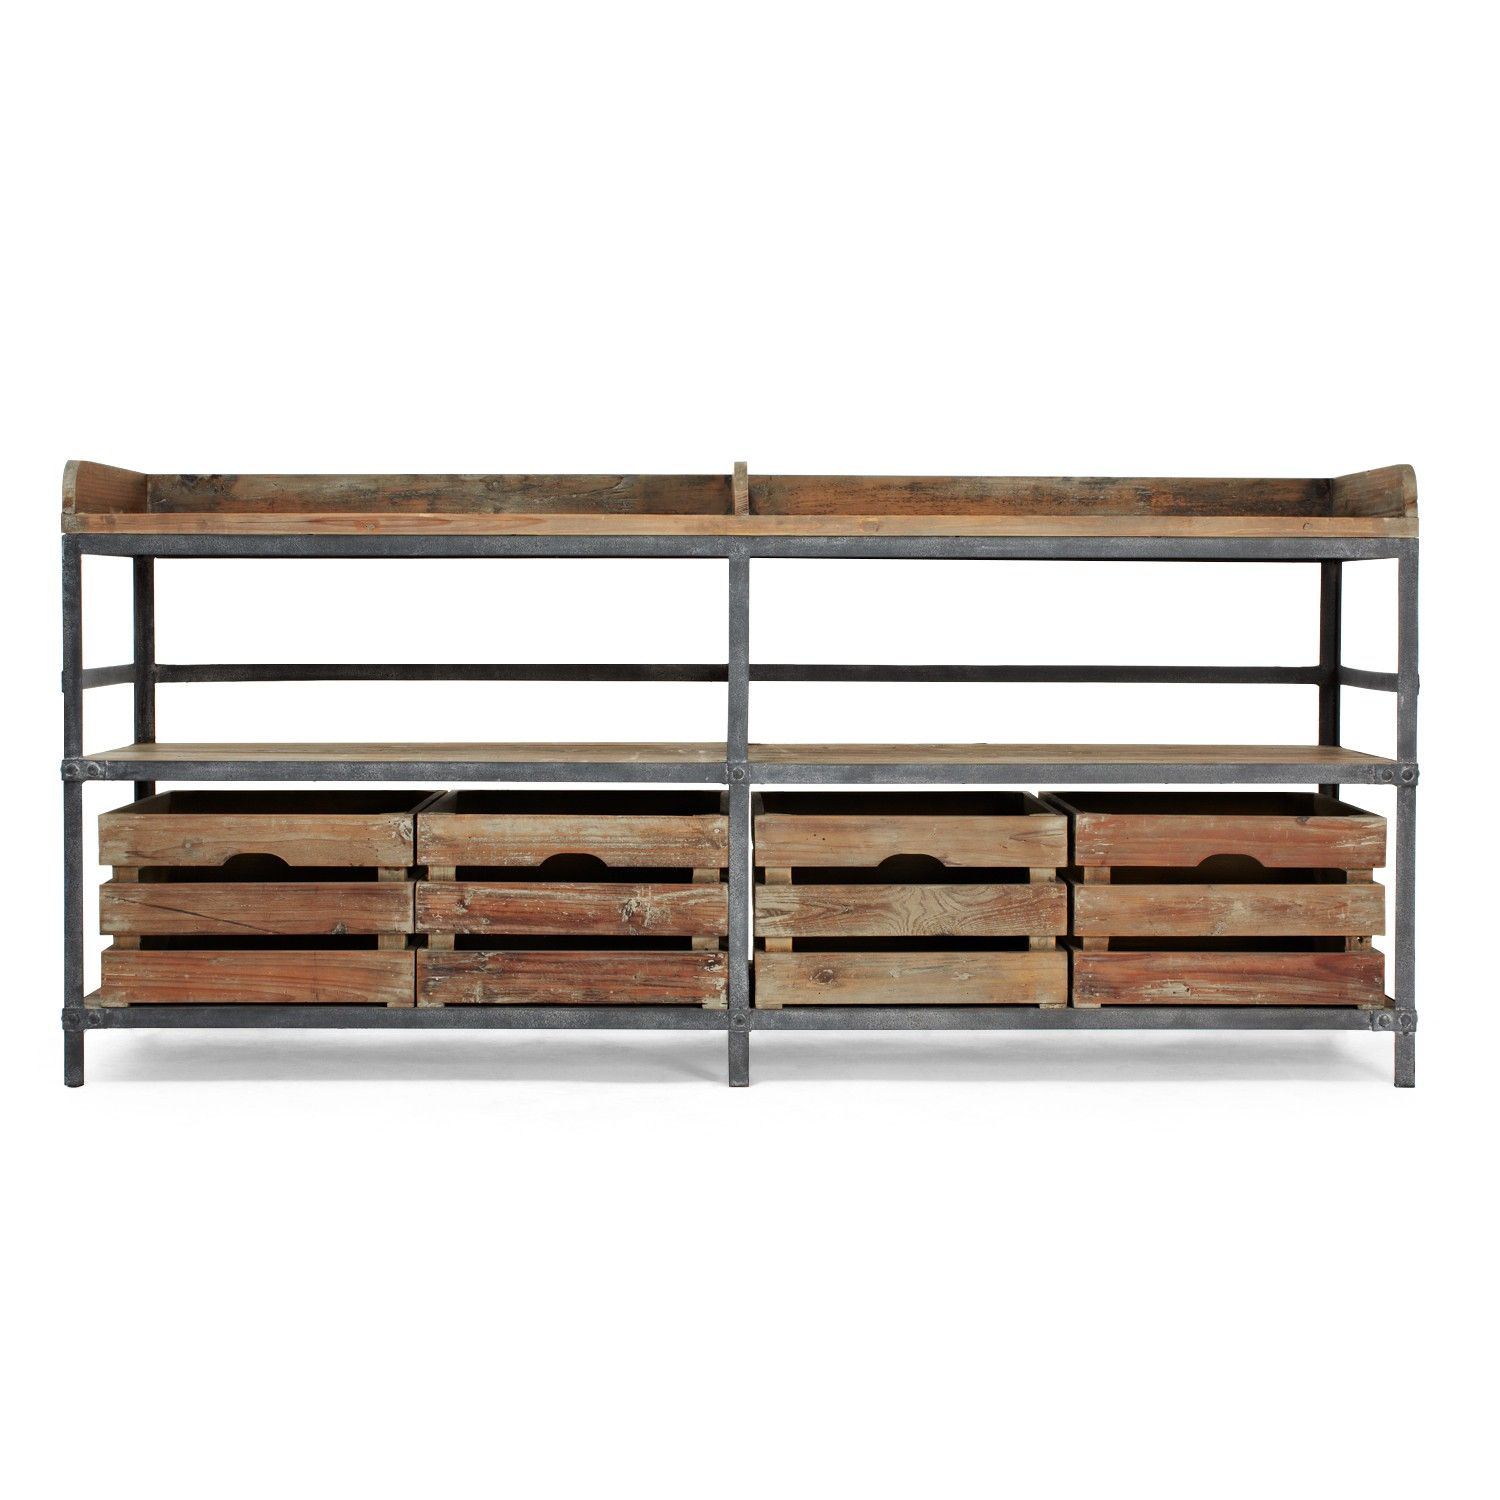 URBN 20 Reclaimed Pine Metal Sideboard